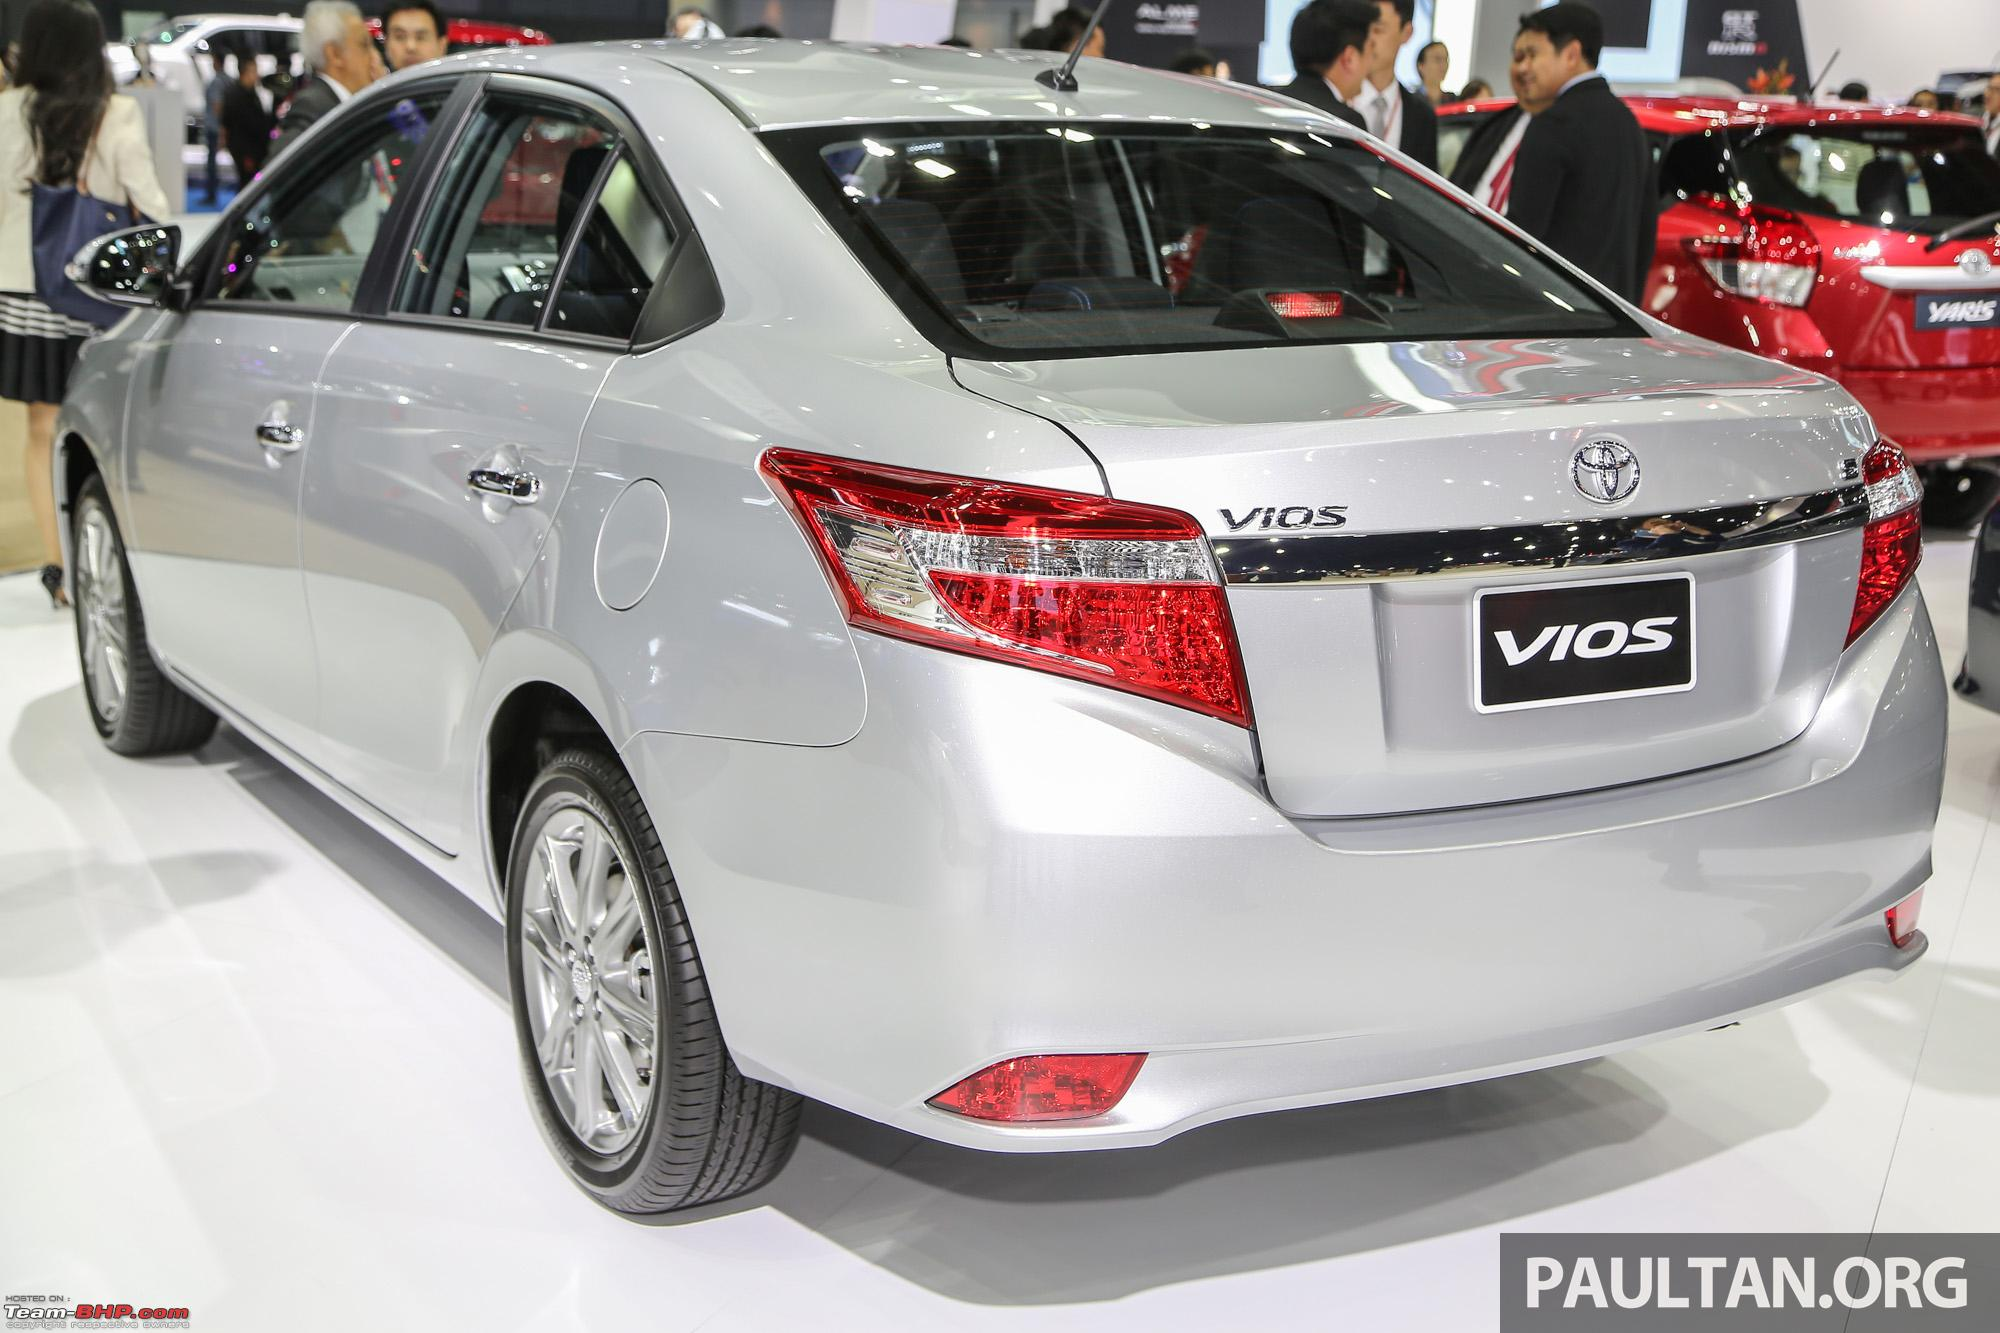 Scoop! Toyota Vios caught testing in Bangalore Edit: it's the Yaris